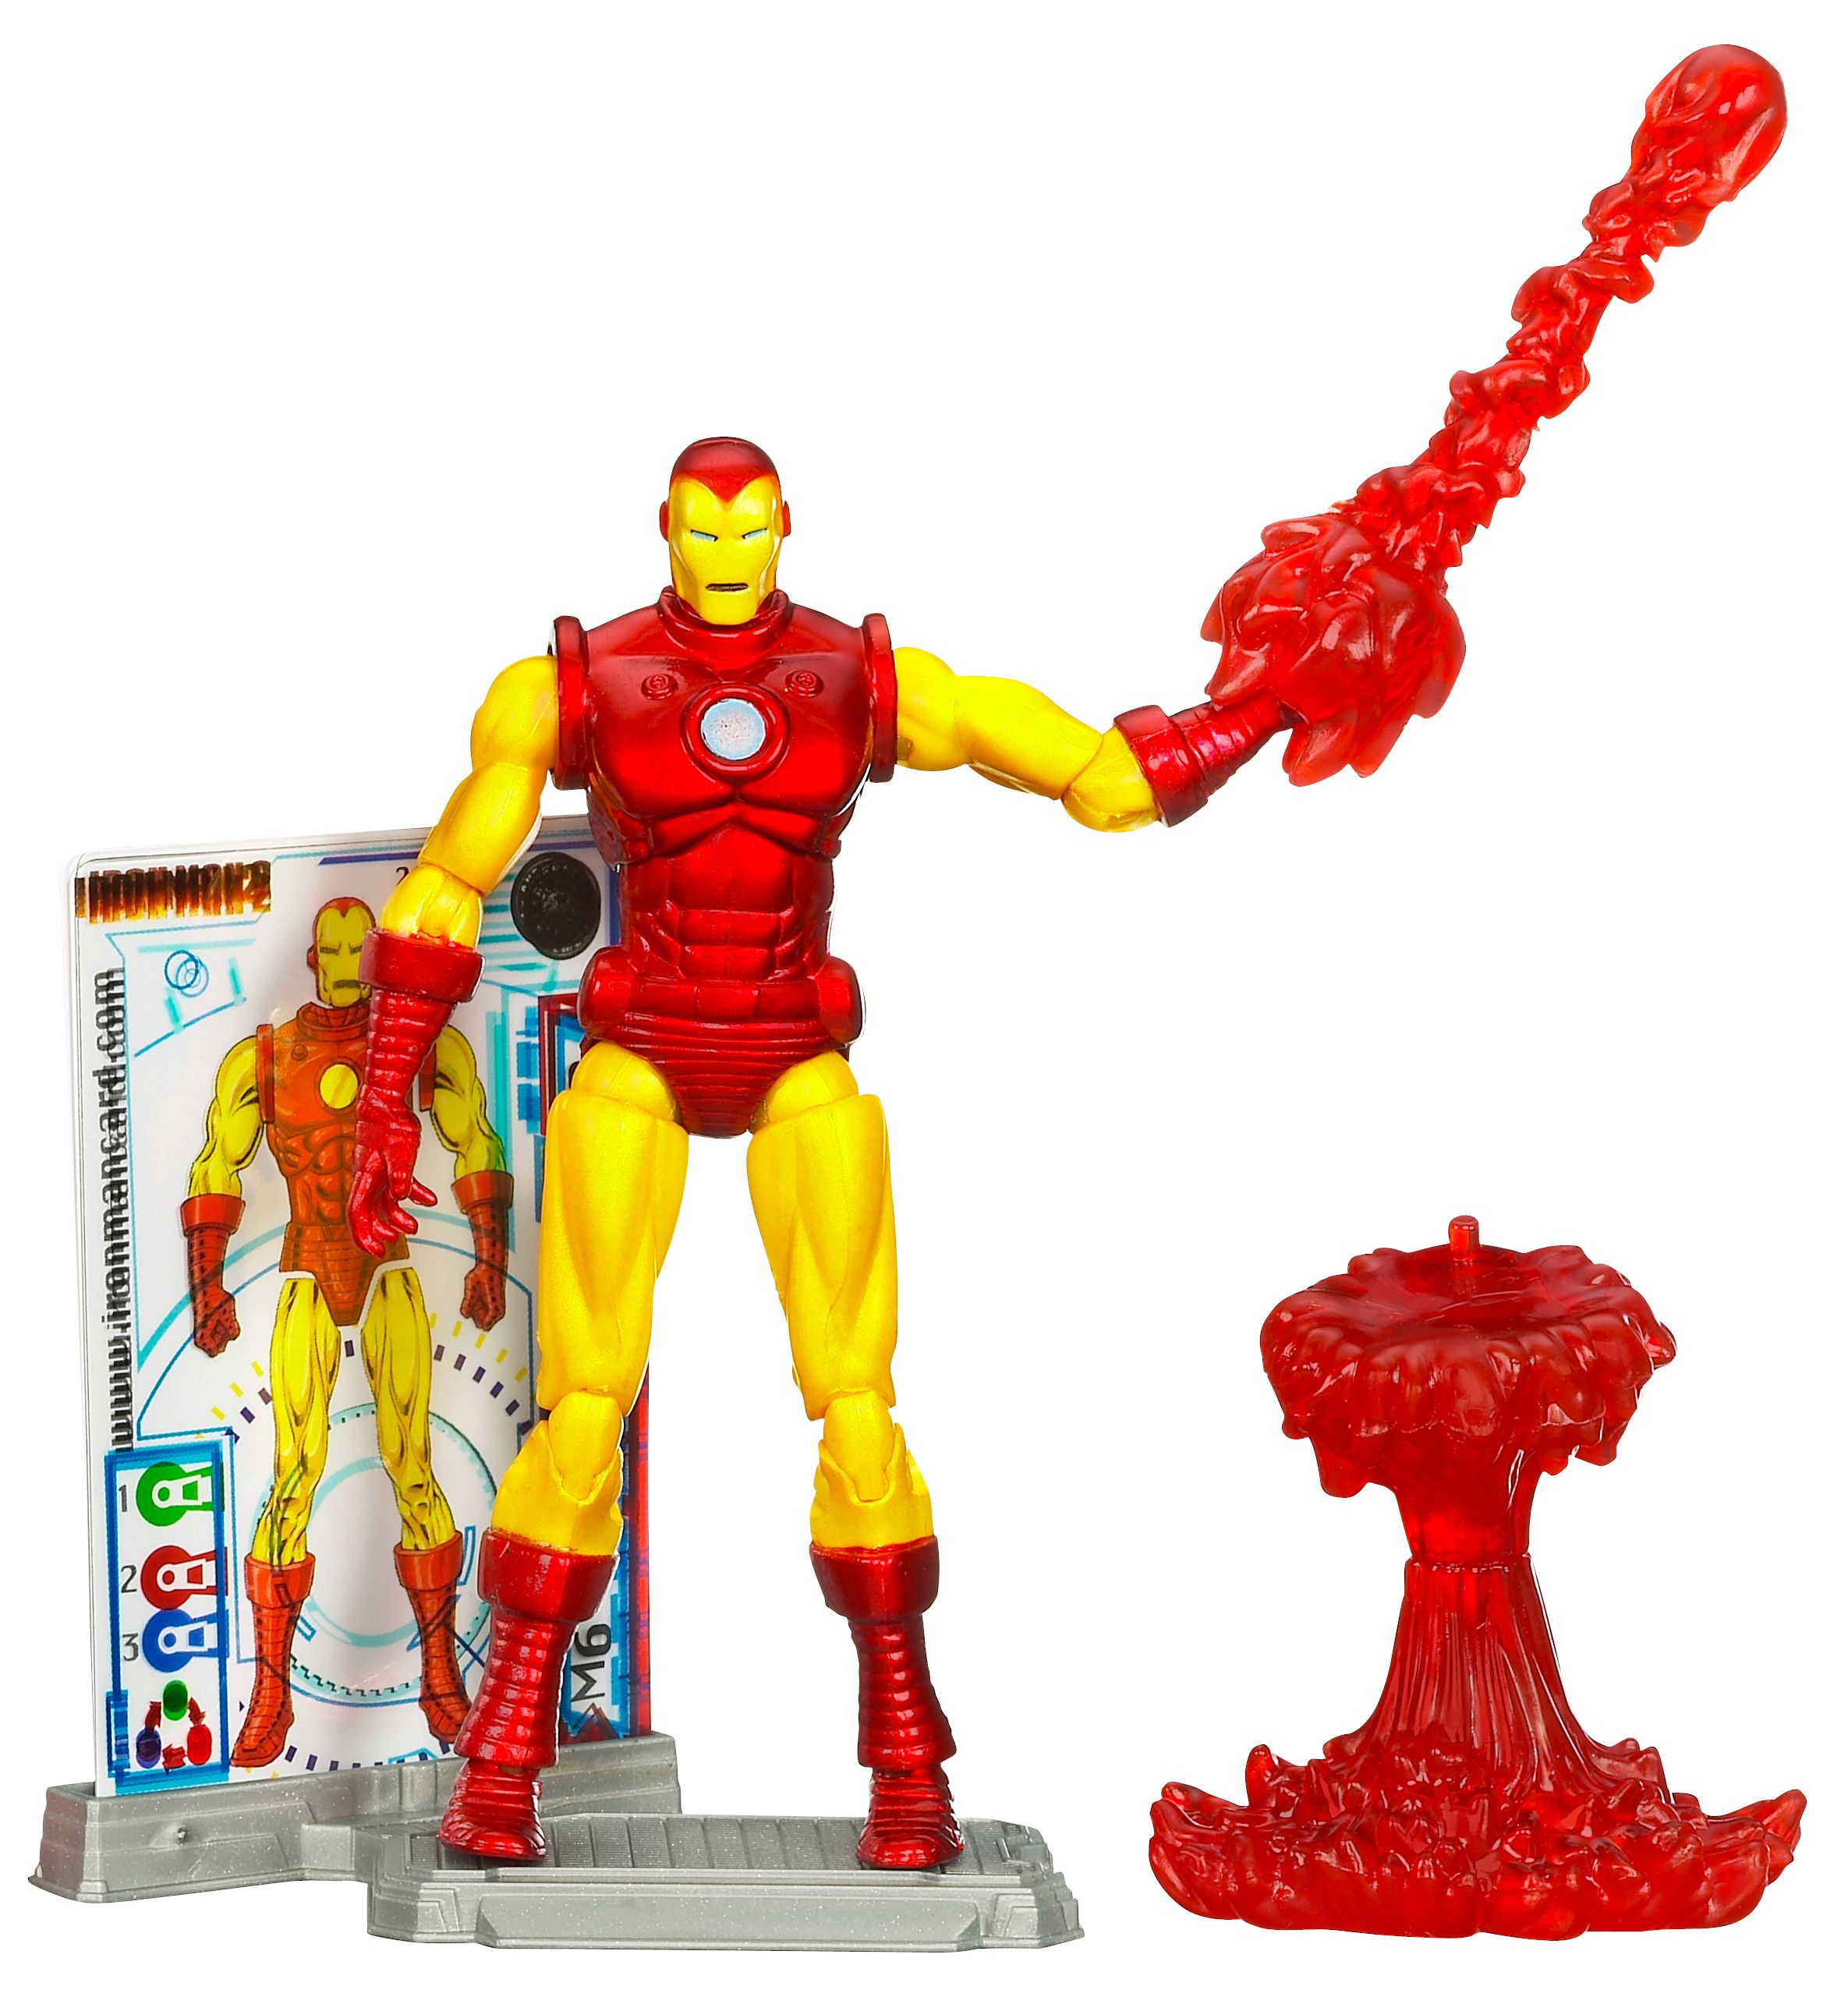 Toys For Gentleman : All the new iron man toys in high resolution including